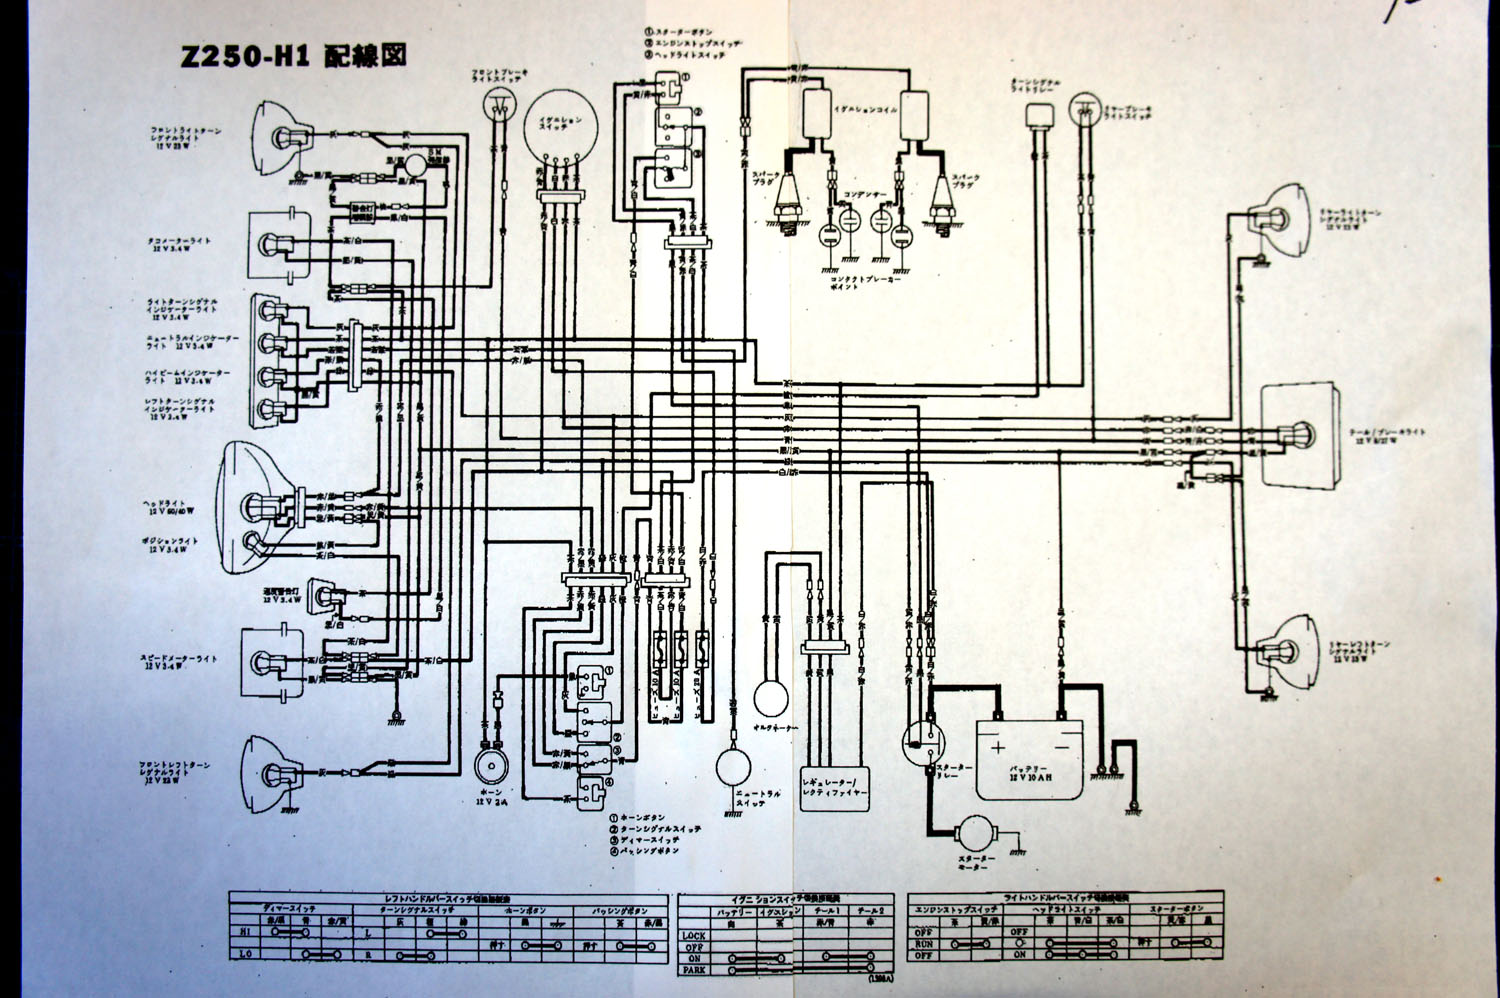 002 kawasaki ltd 450 wiring diagram kawasaki 440 ltd wiring diagram 1981 kawasaki 440 ltd wiring diagram at n-0.co